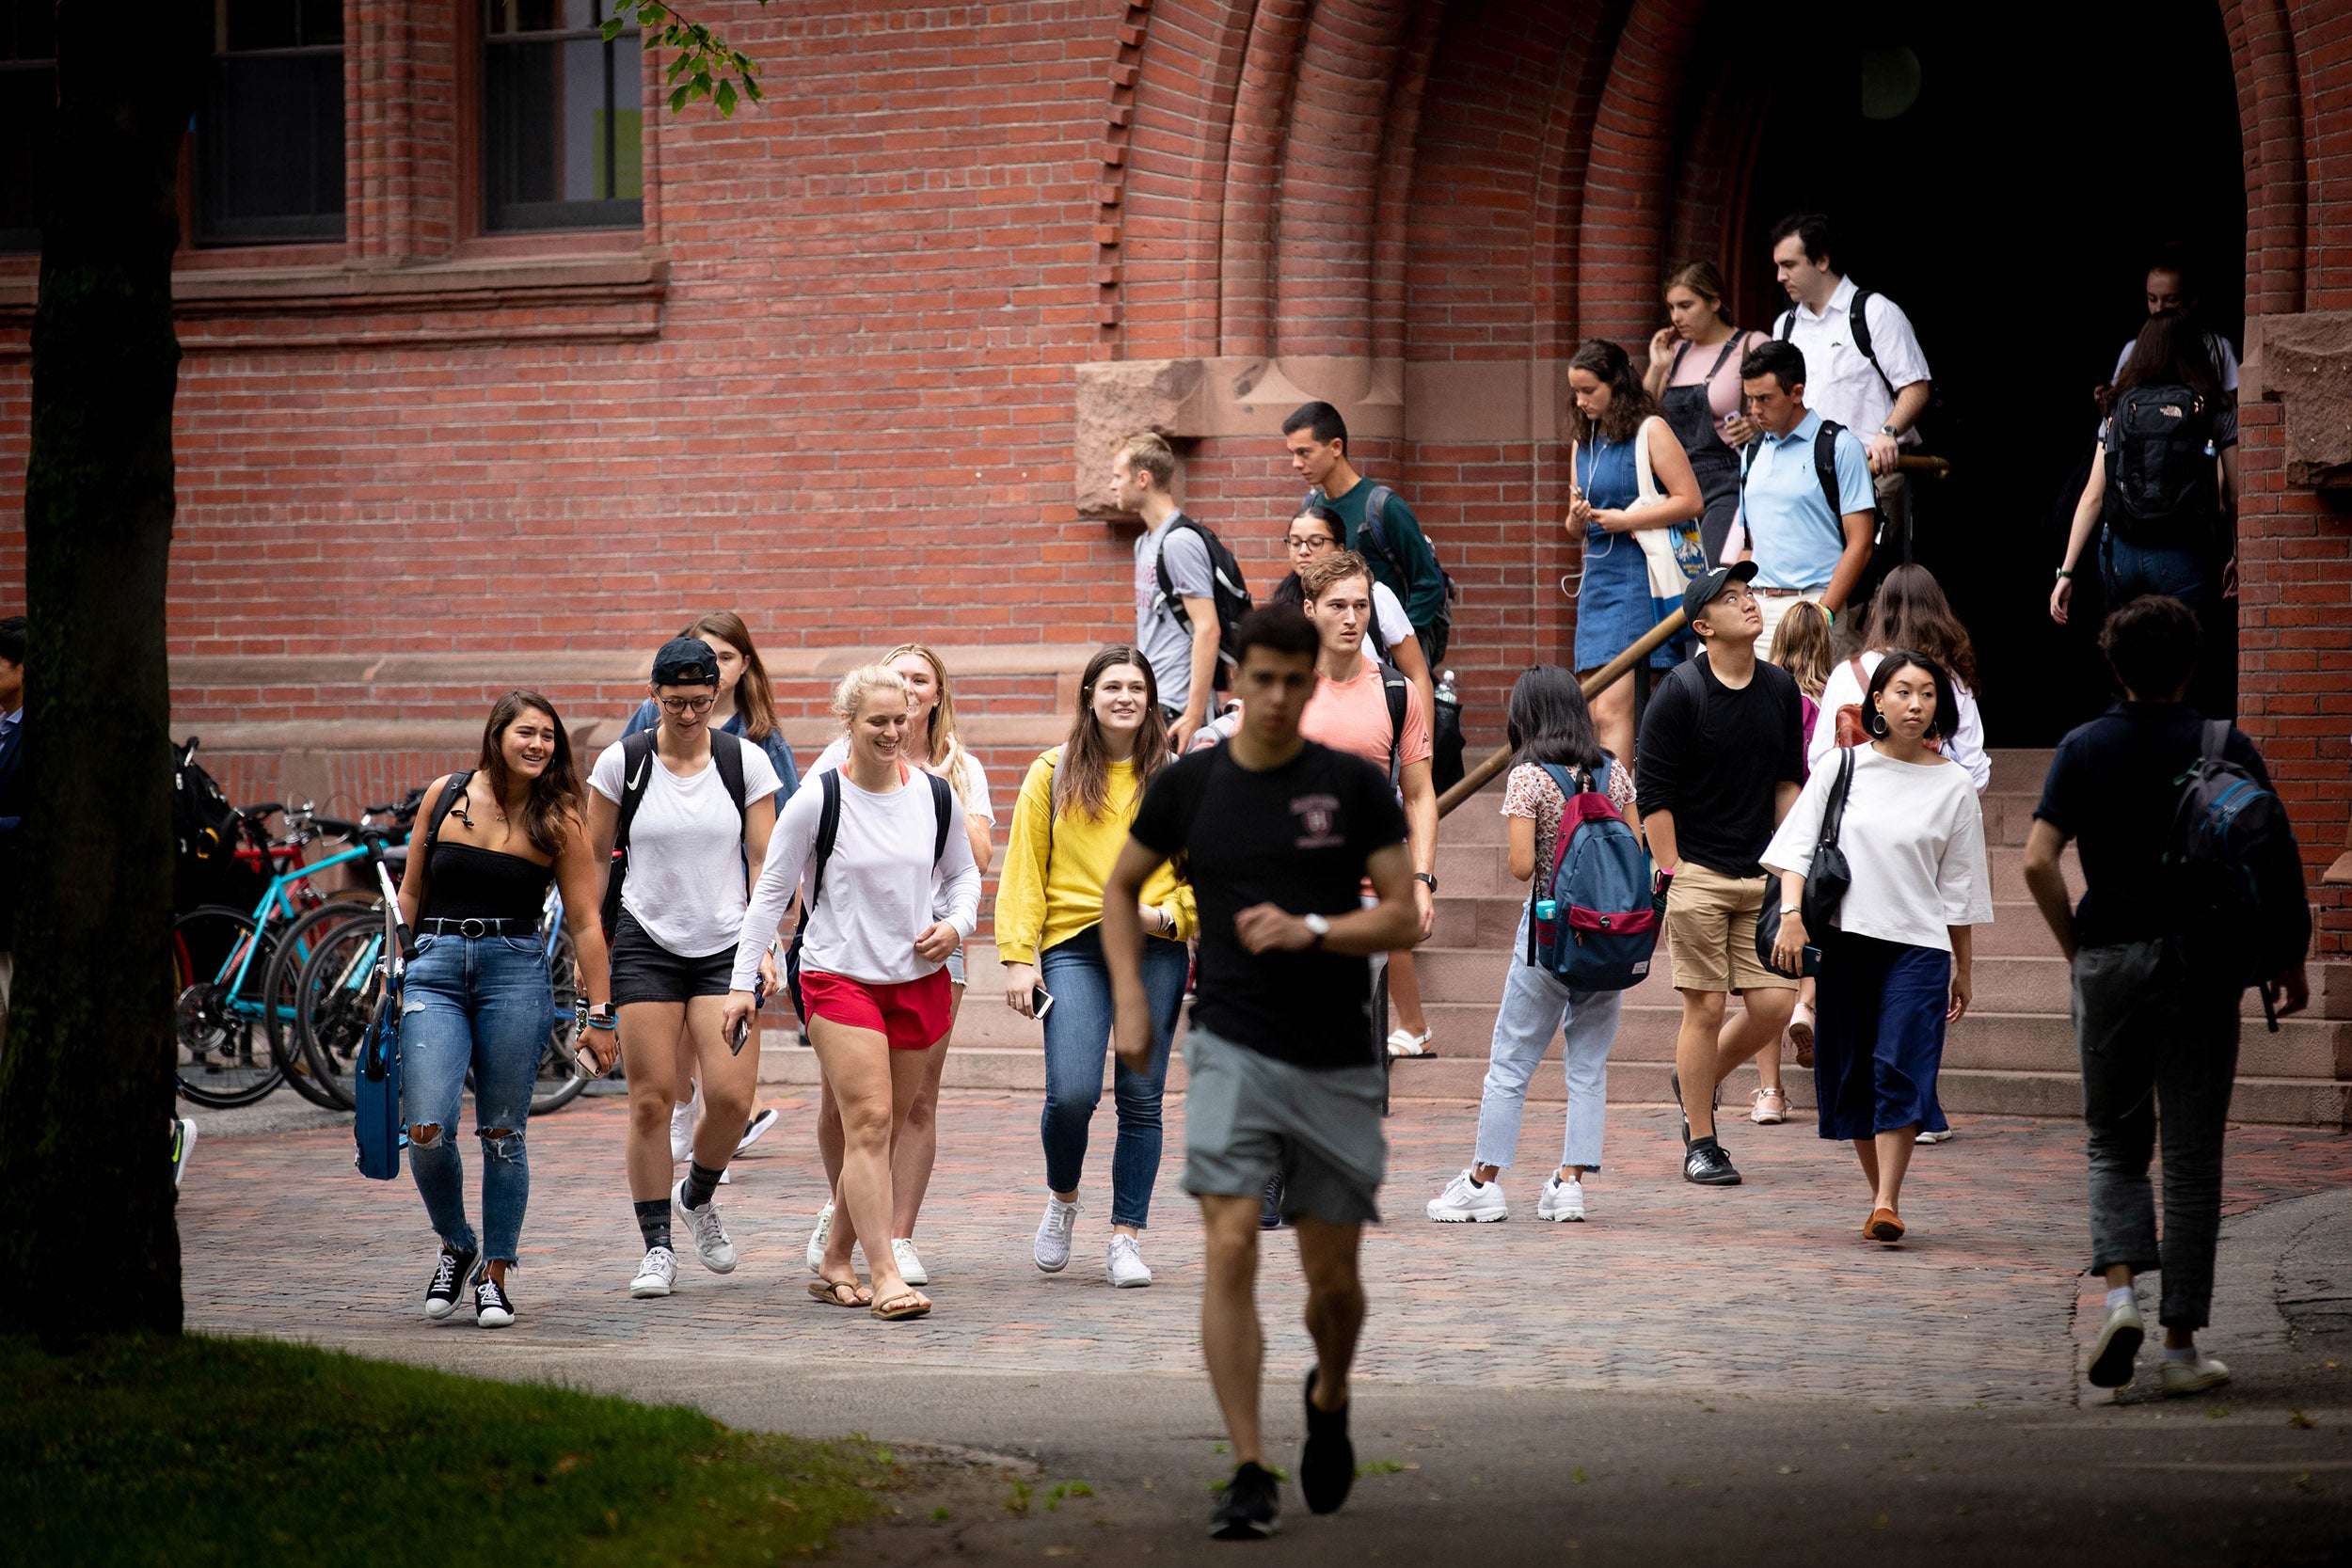 Students walk out of Sever Hall.